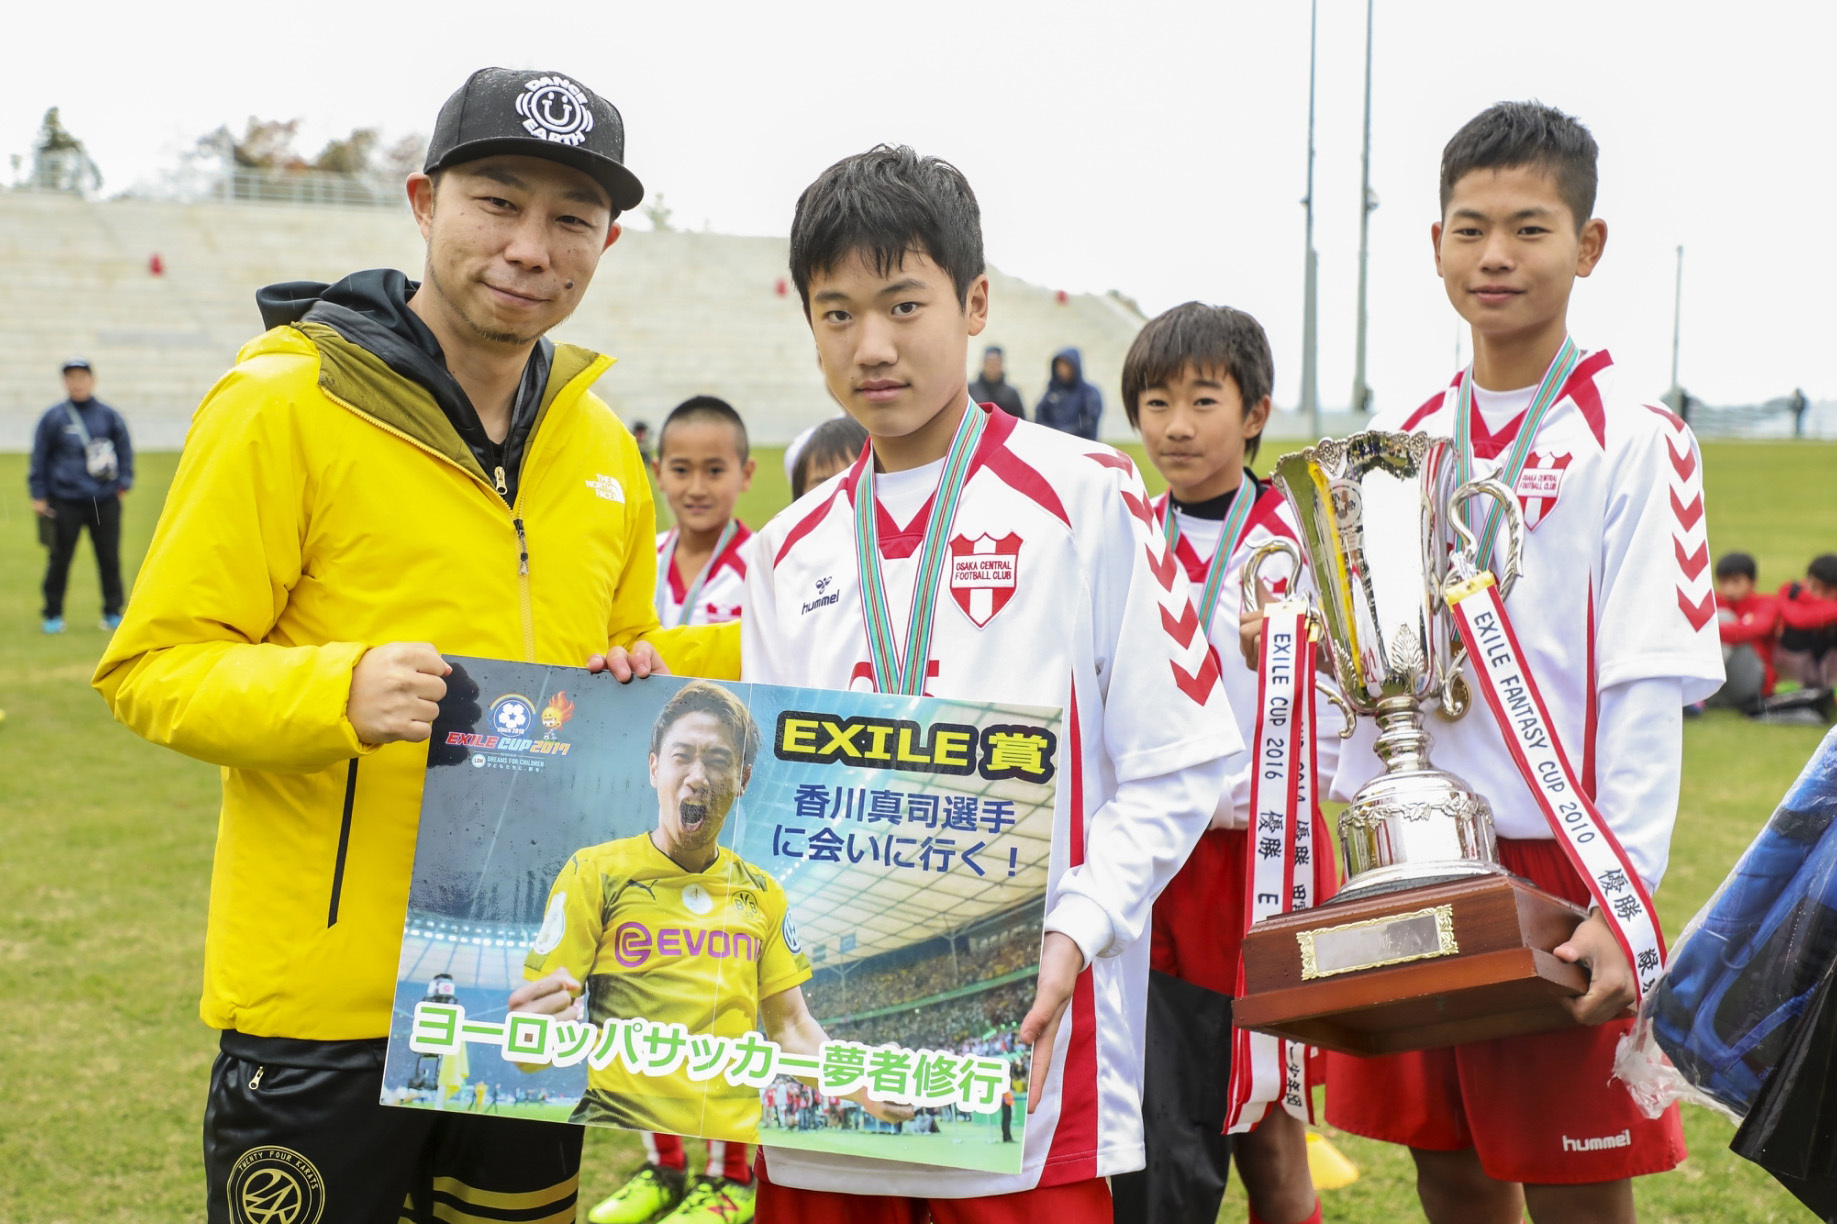 """『EXILE CUP2017』EXILE USAから""""ヨーロッパサッカー武者修行""""を授与"""